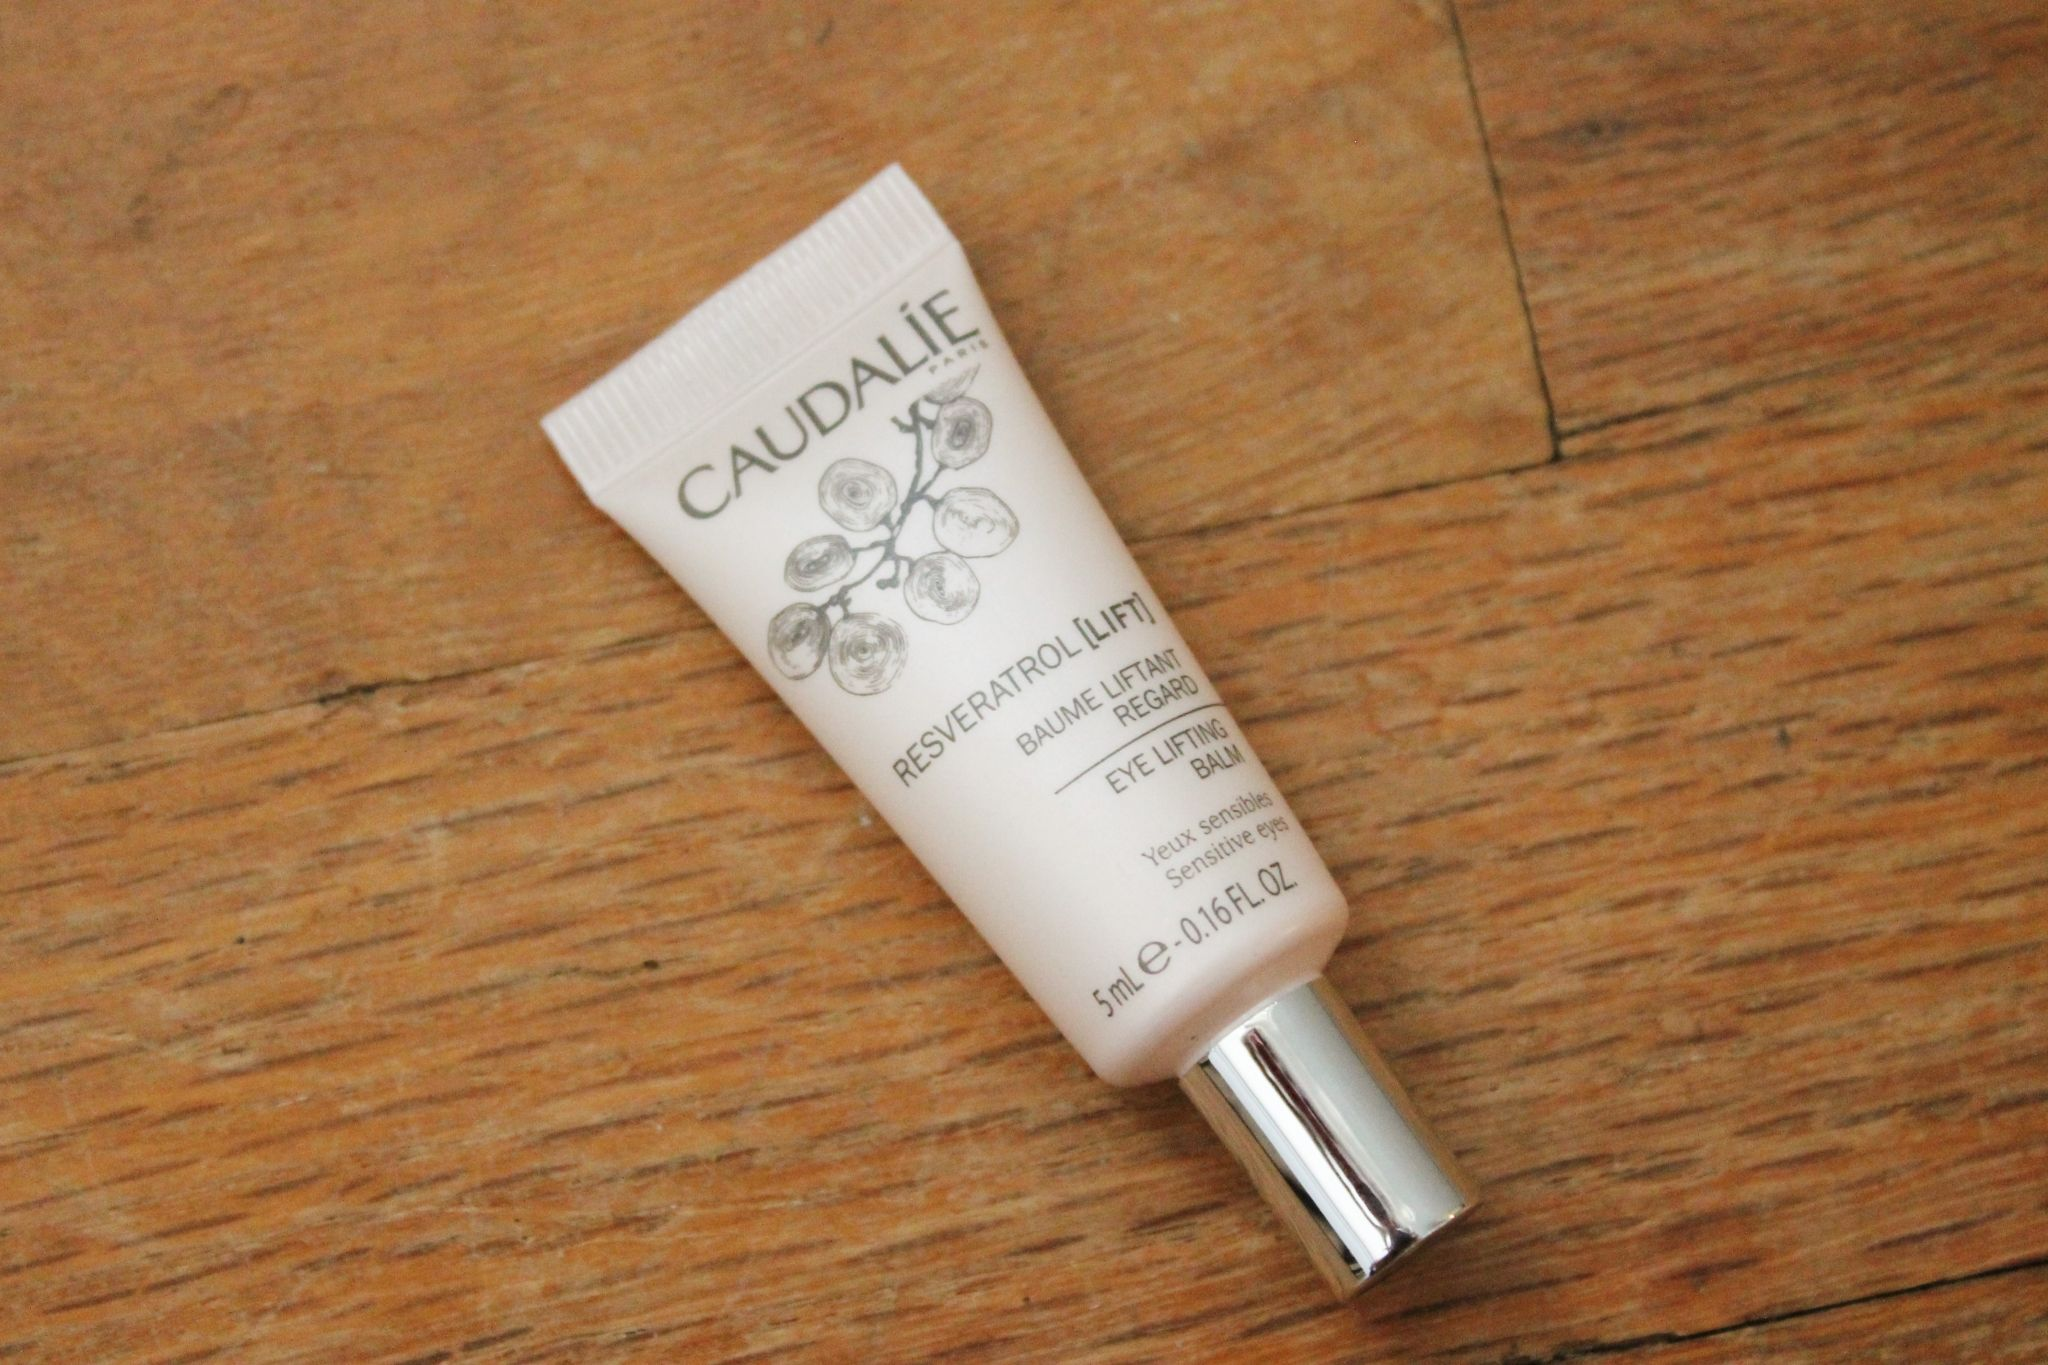 August Play by Sephora Caudalie Balm